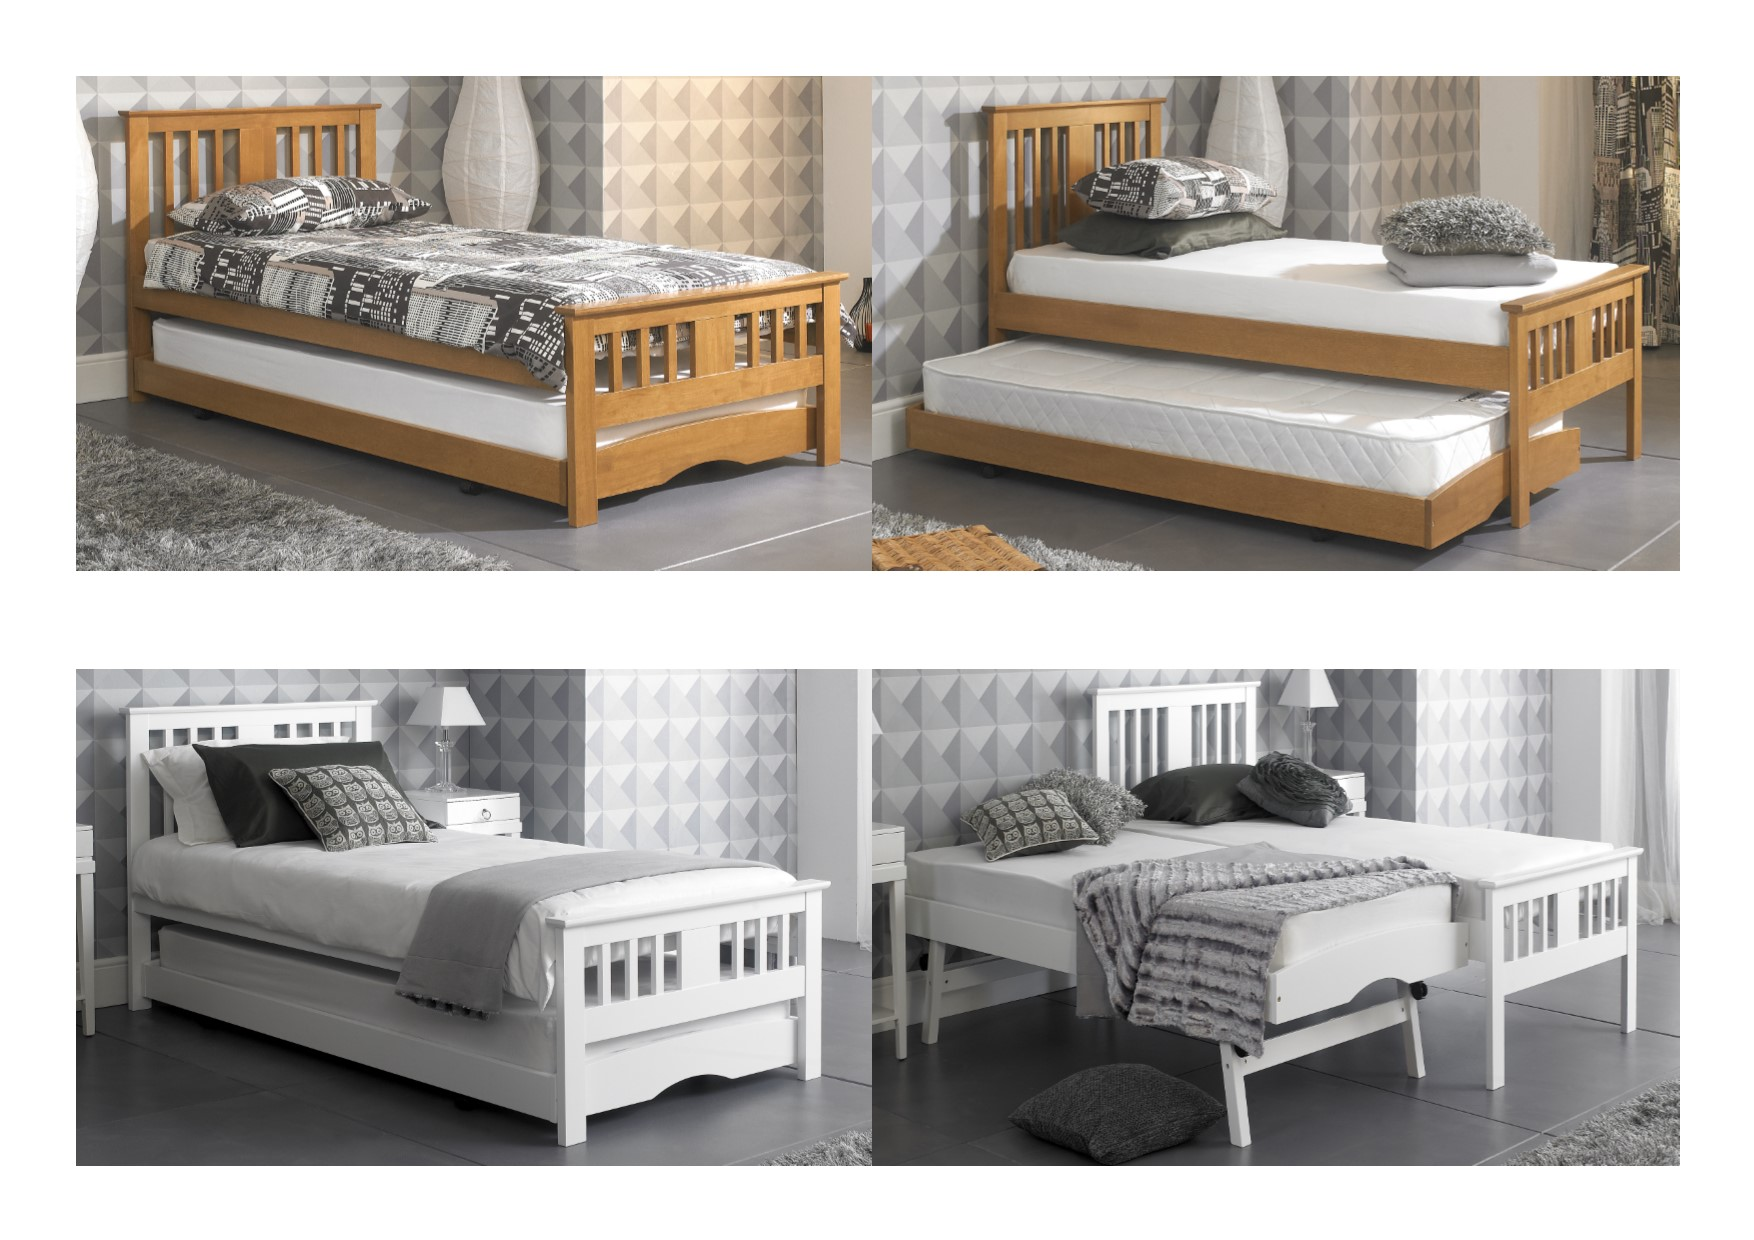 artisan beds rubberwood single guest bed with trundle. Black Bedroom Furniture Sets. Home Design Ideas